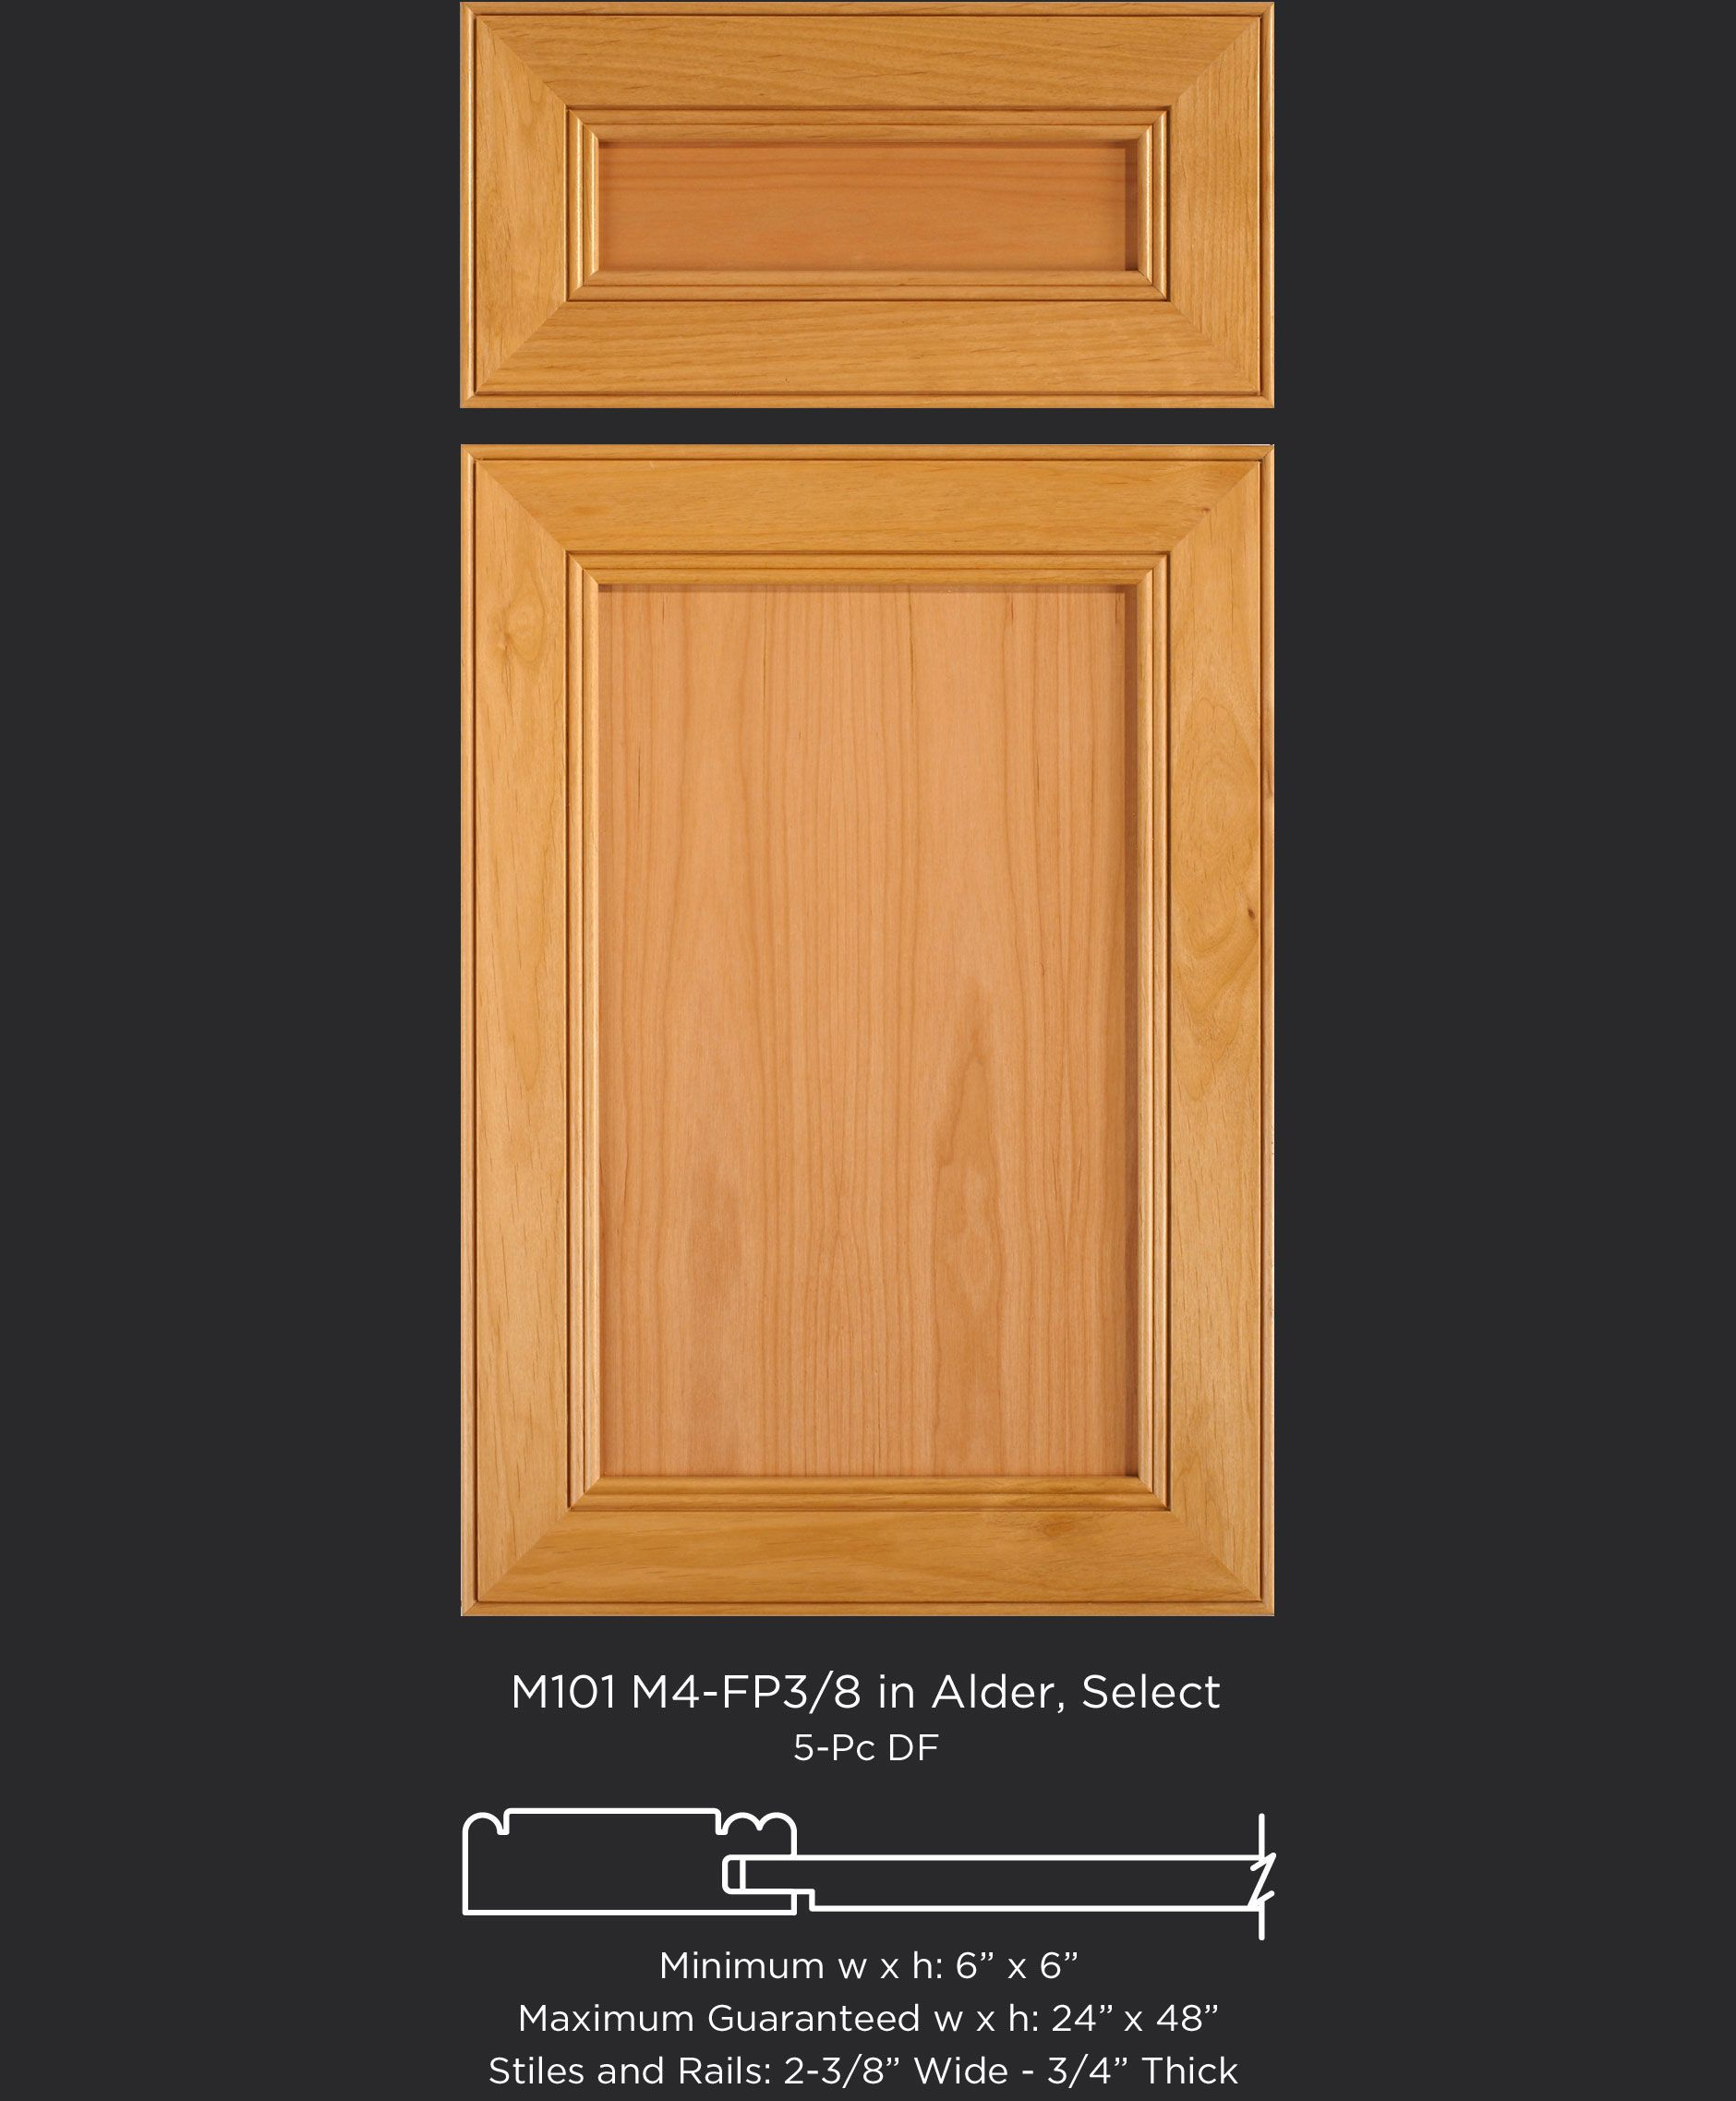 alder cabinet door with single bead on outside edge and double bead rh pinterest com